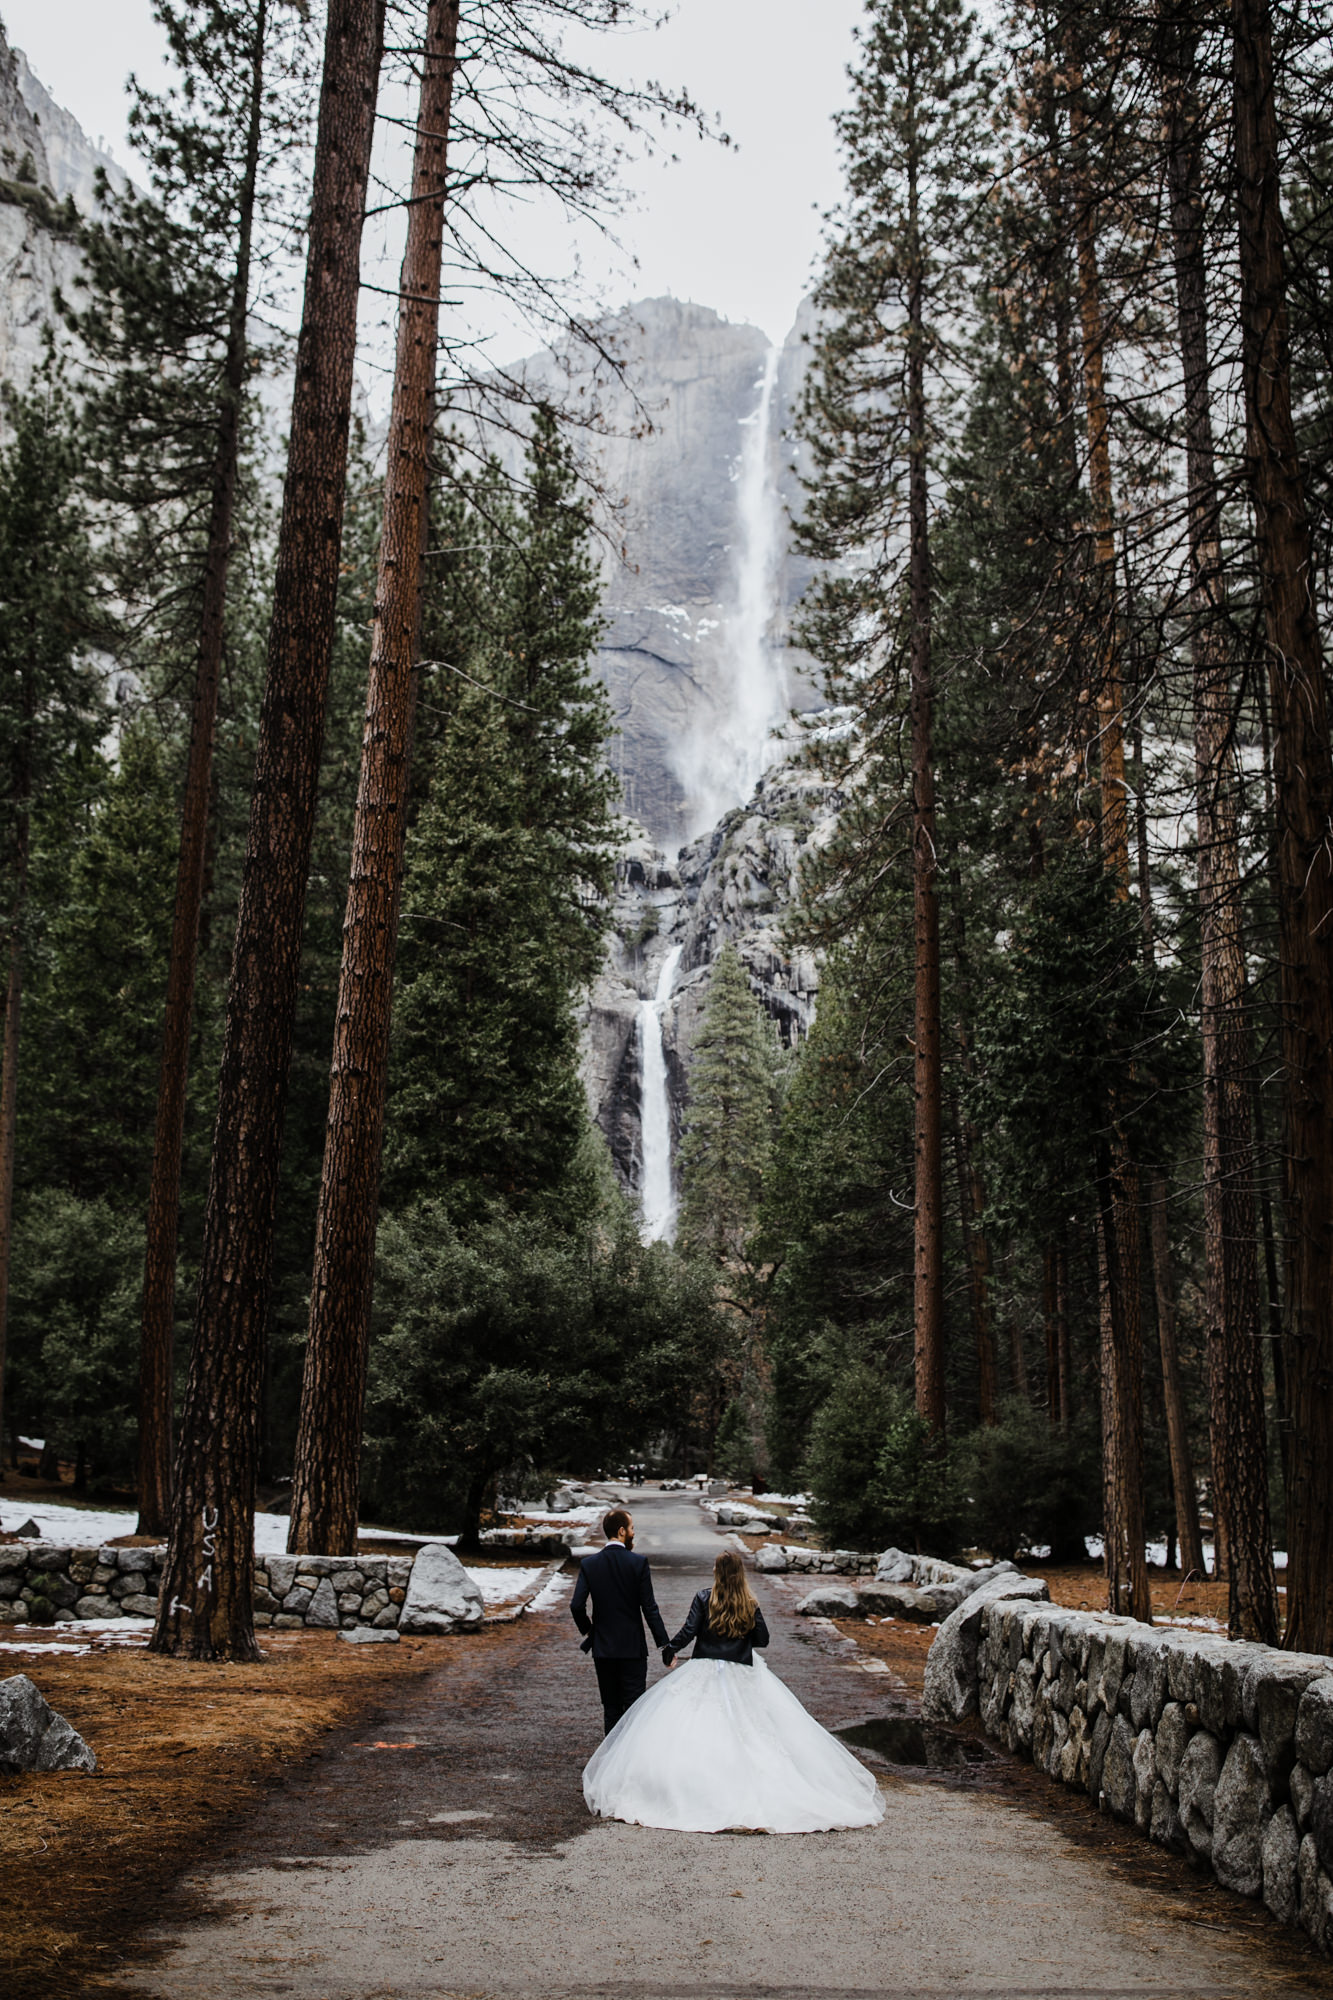 snowy elopement wedding in yosemite national park | The Hearnes Adventure Photography